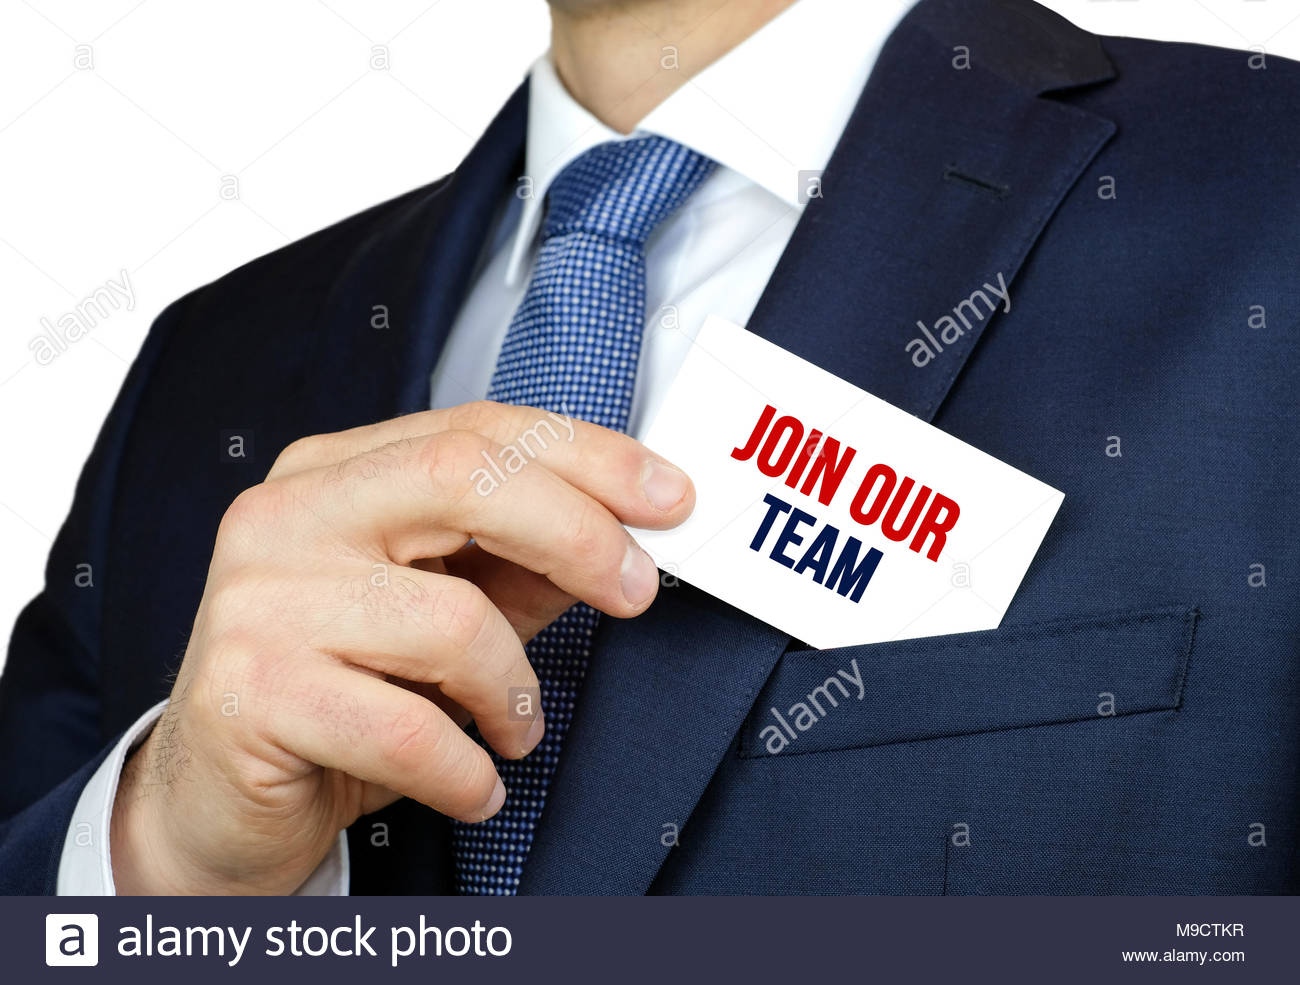 join our team - temwork concept - Stock Image